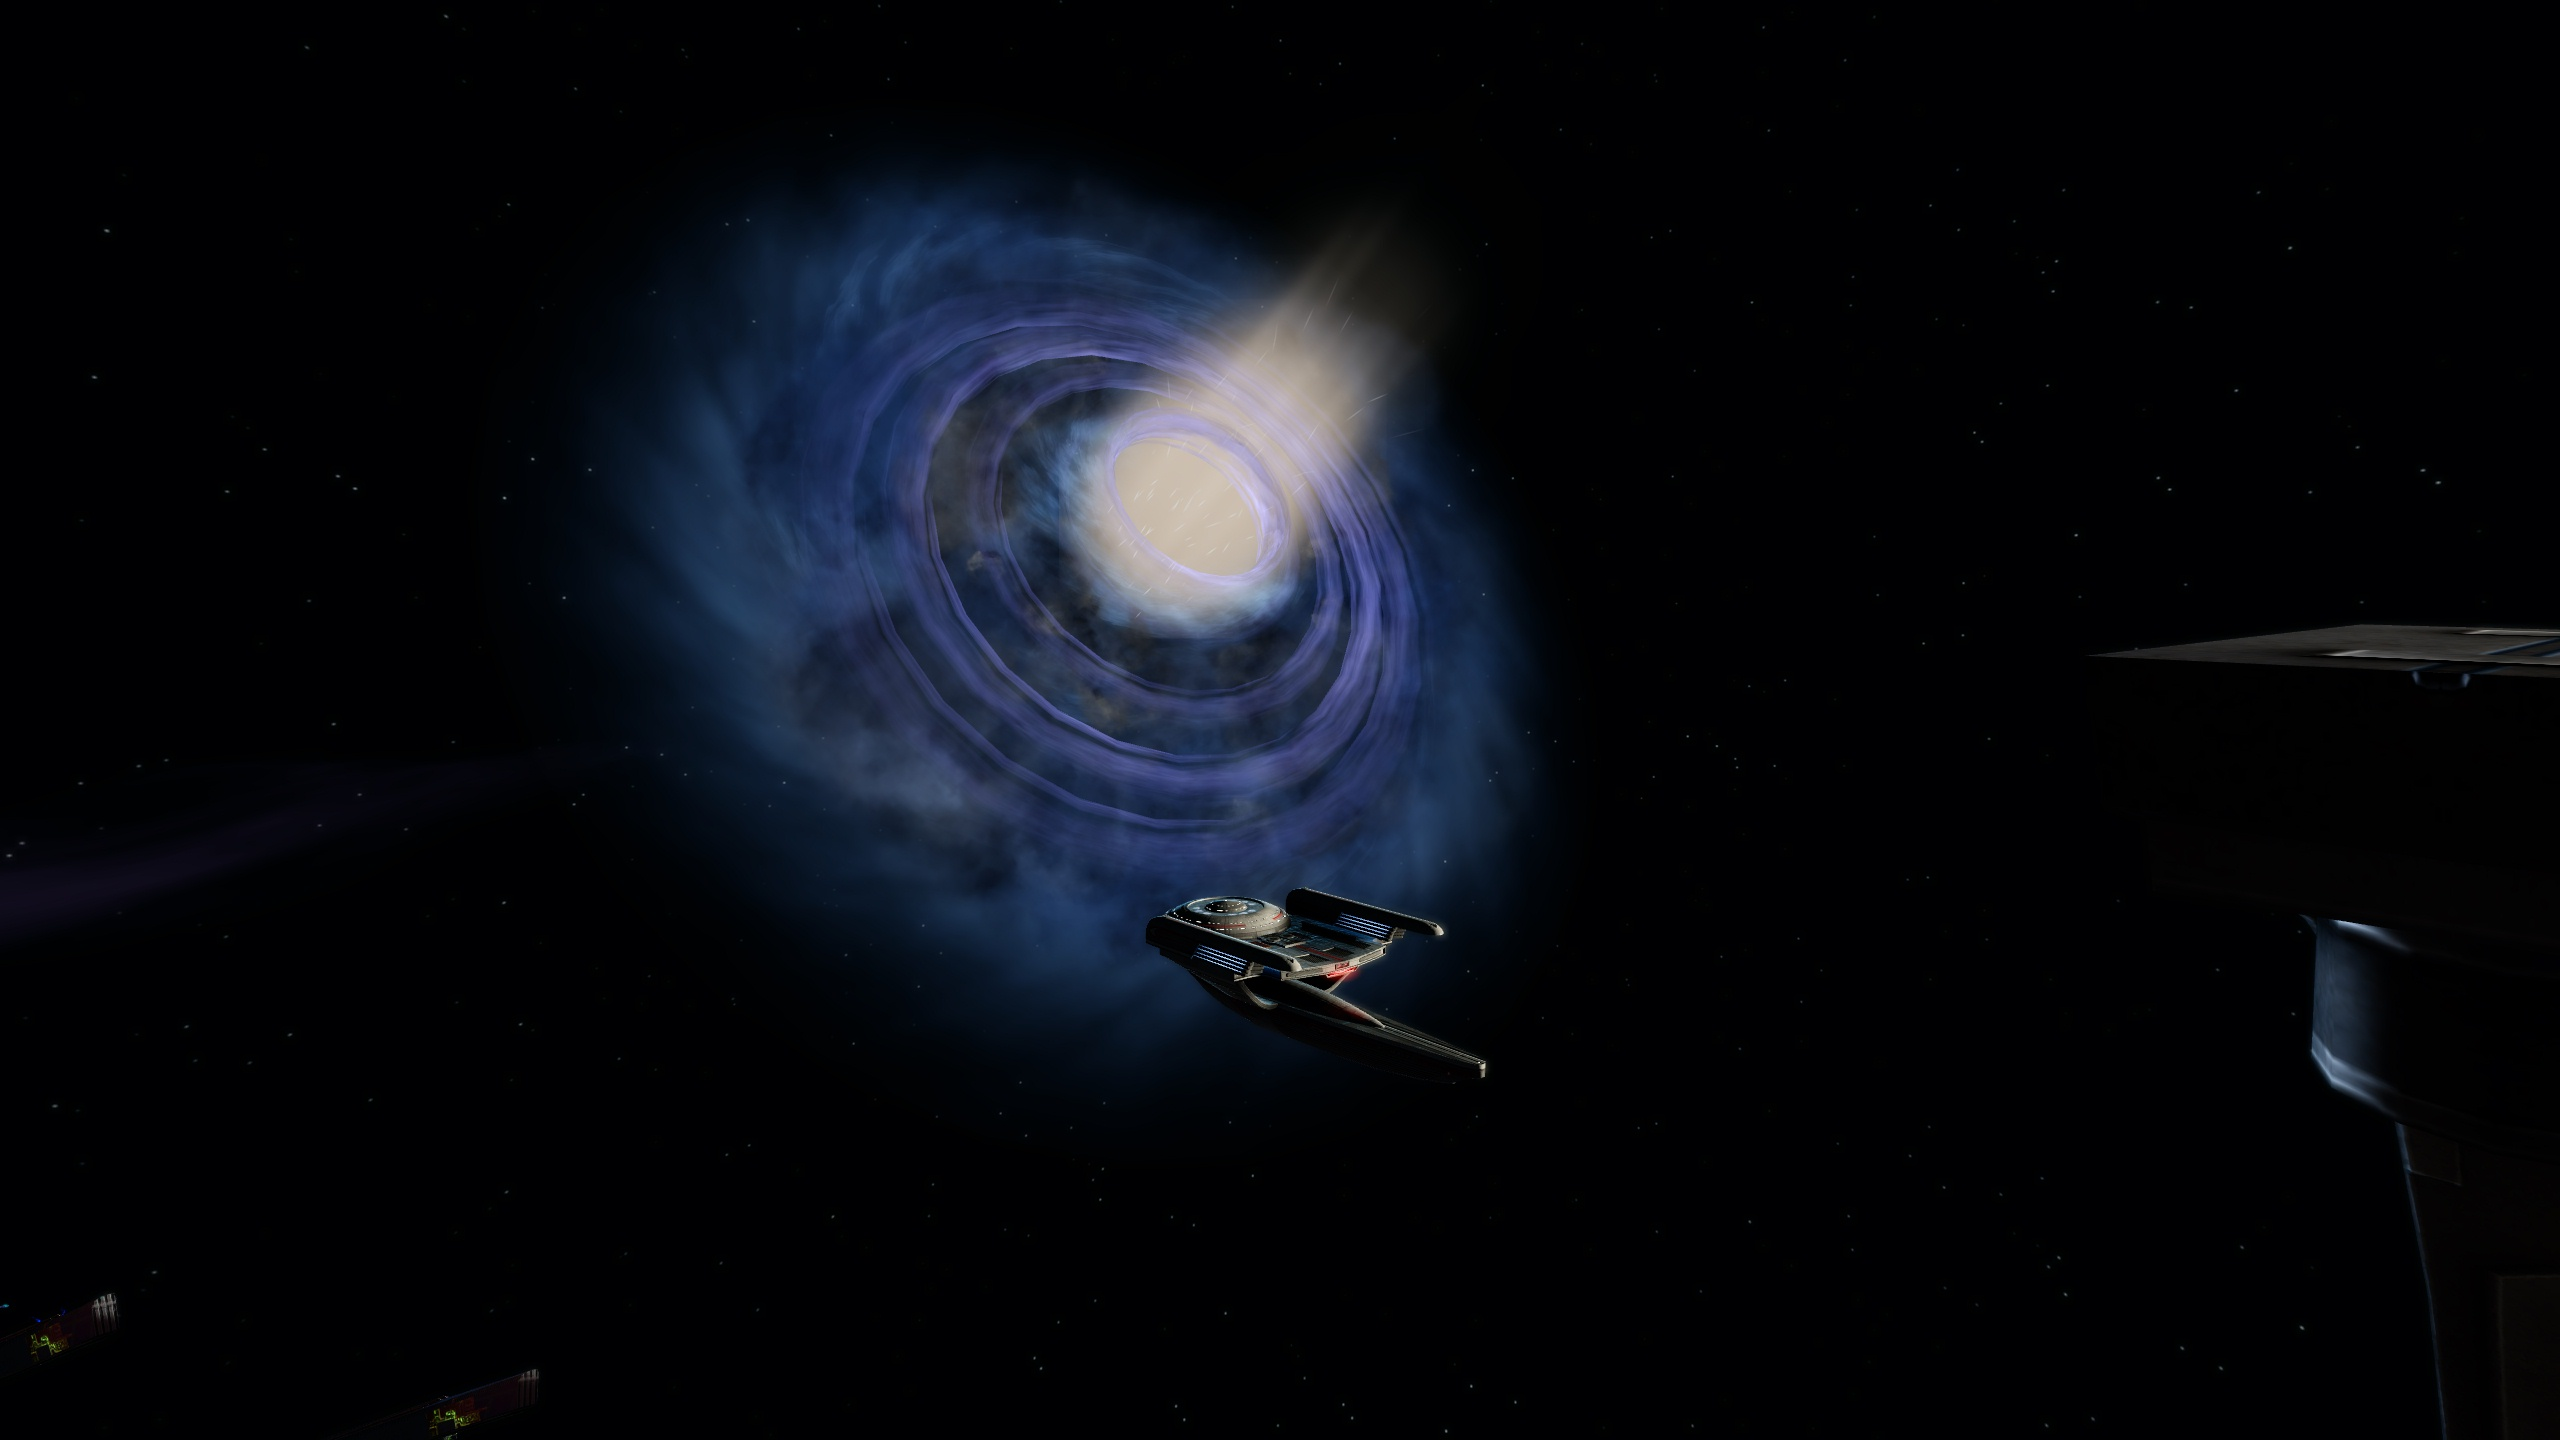 The USS Tookbank at DS9, with a magnificent view of the Wormhole.